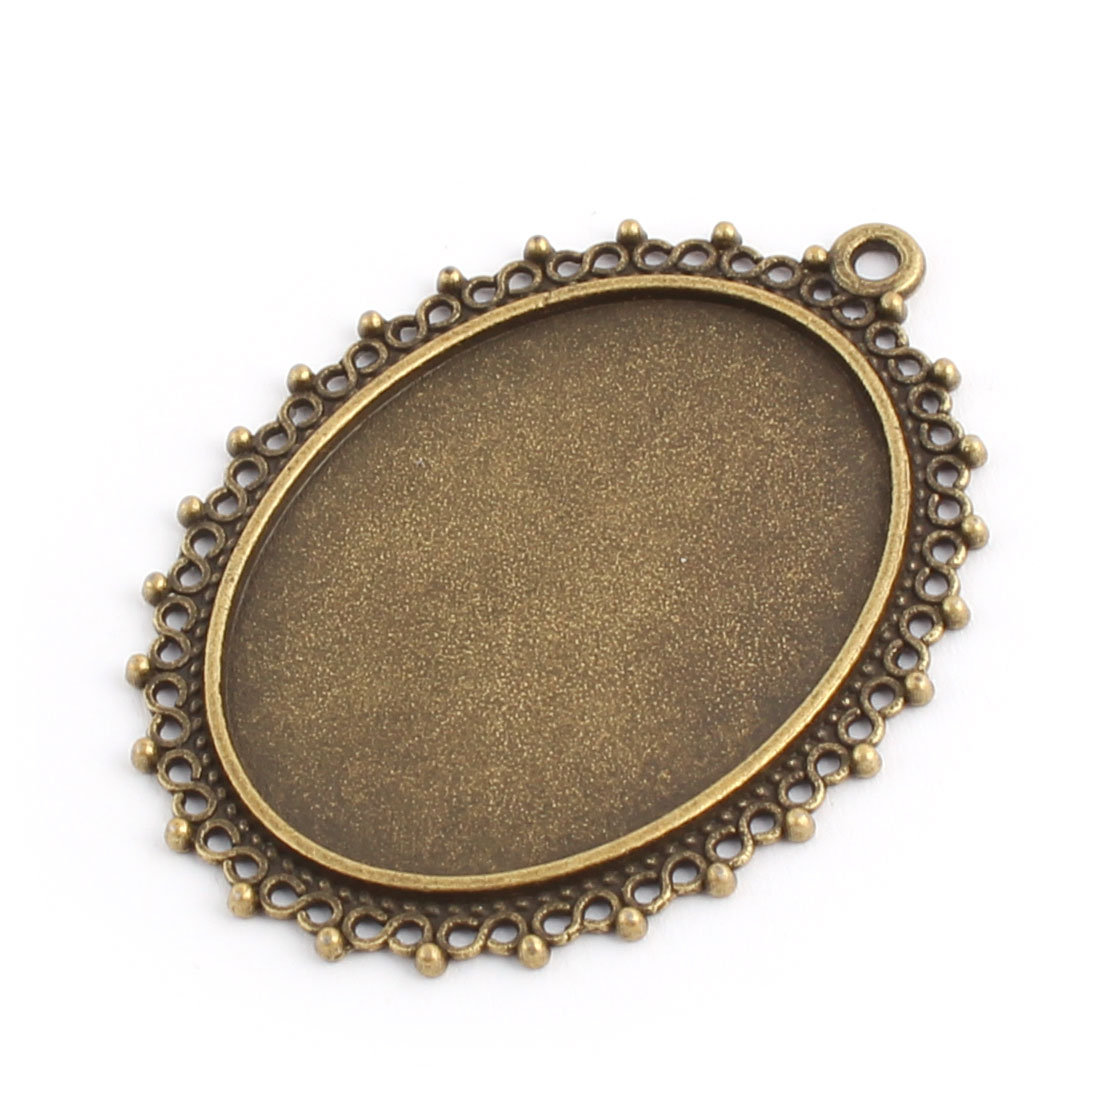 DIY Copper Alloy Oval Vintage Style Ornament Jewelry Pendant Trays 40mm x 30mm